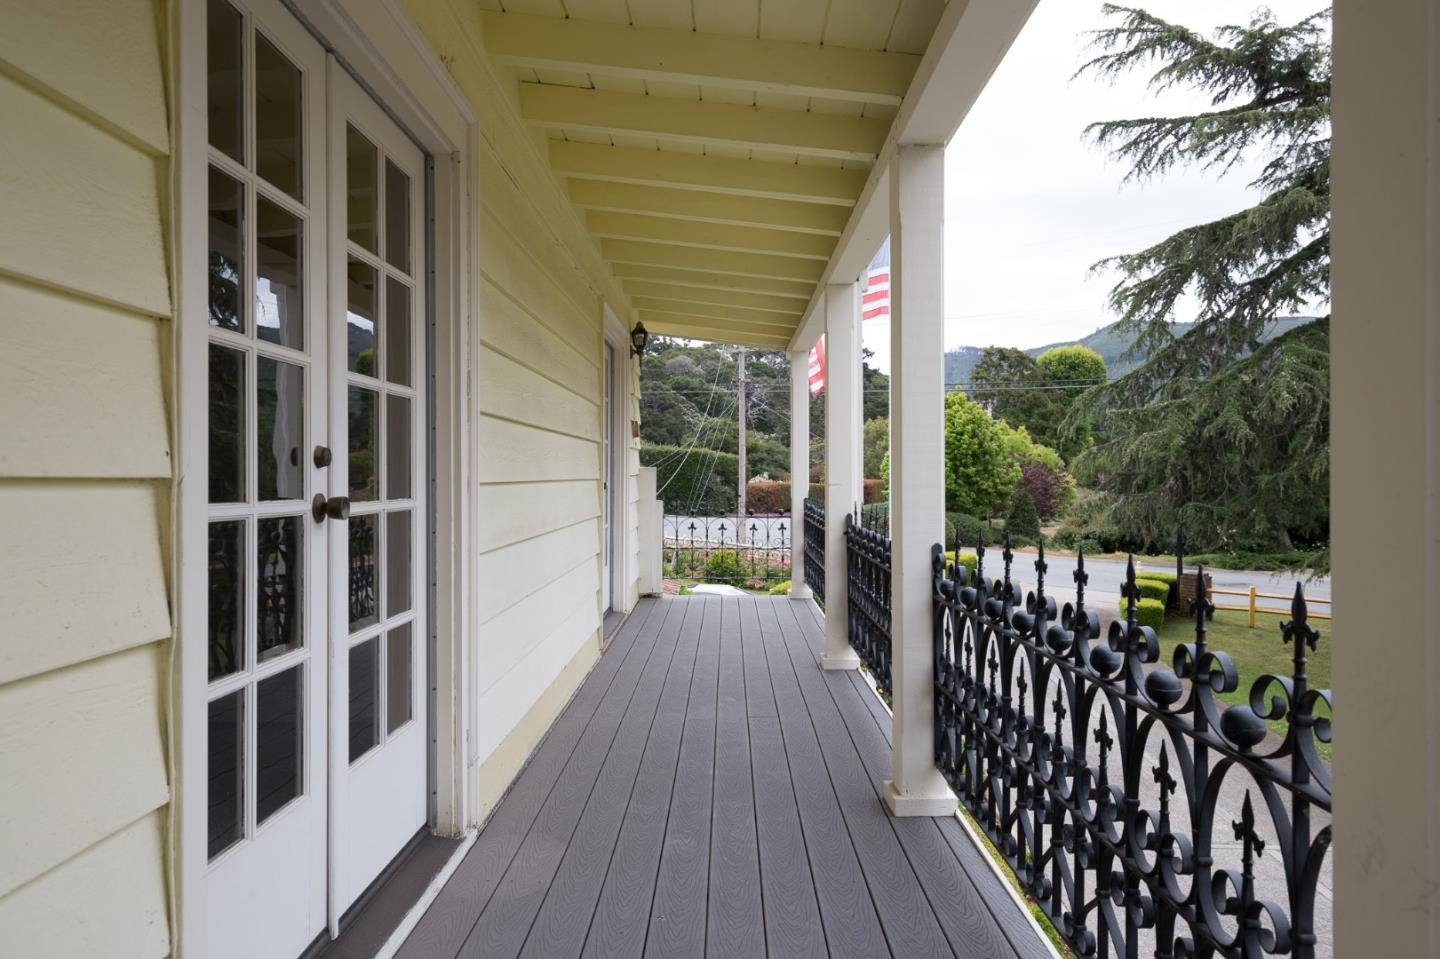 Additional photo for property listing at 6445 Brookdale Drive  Carmel, California 93923 United States